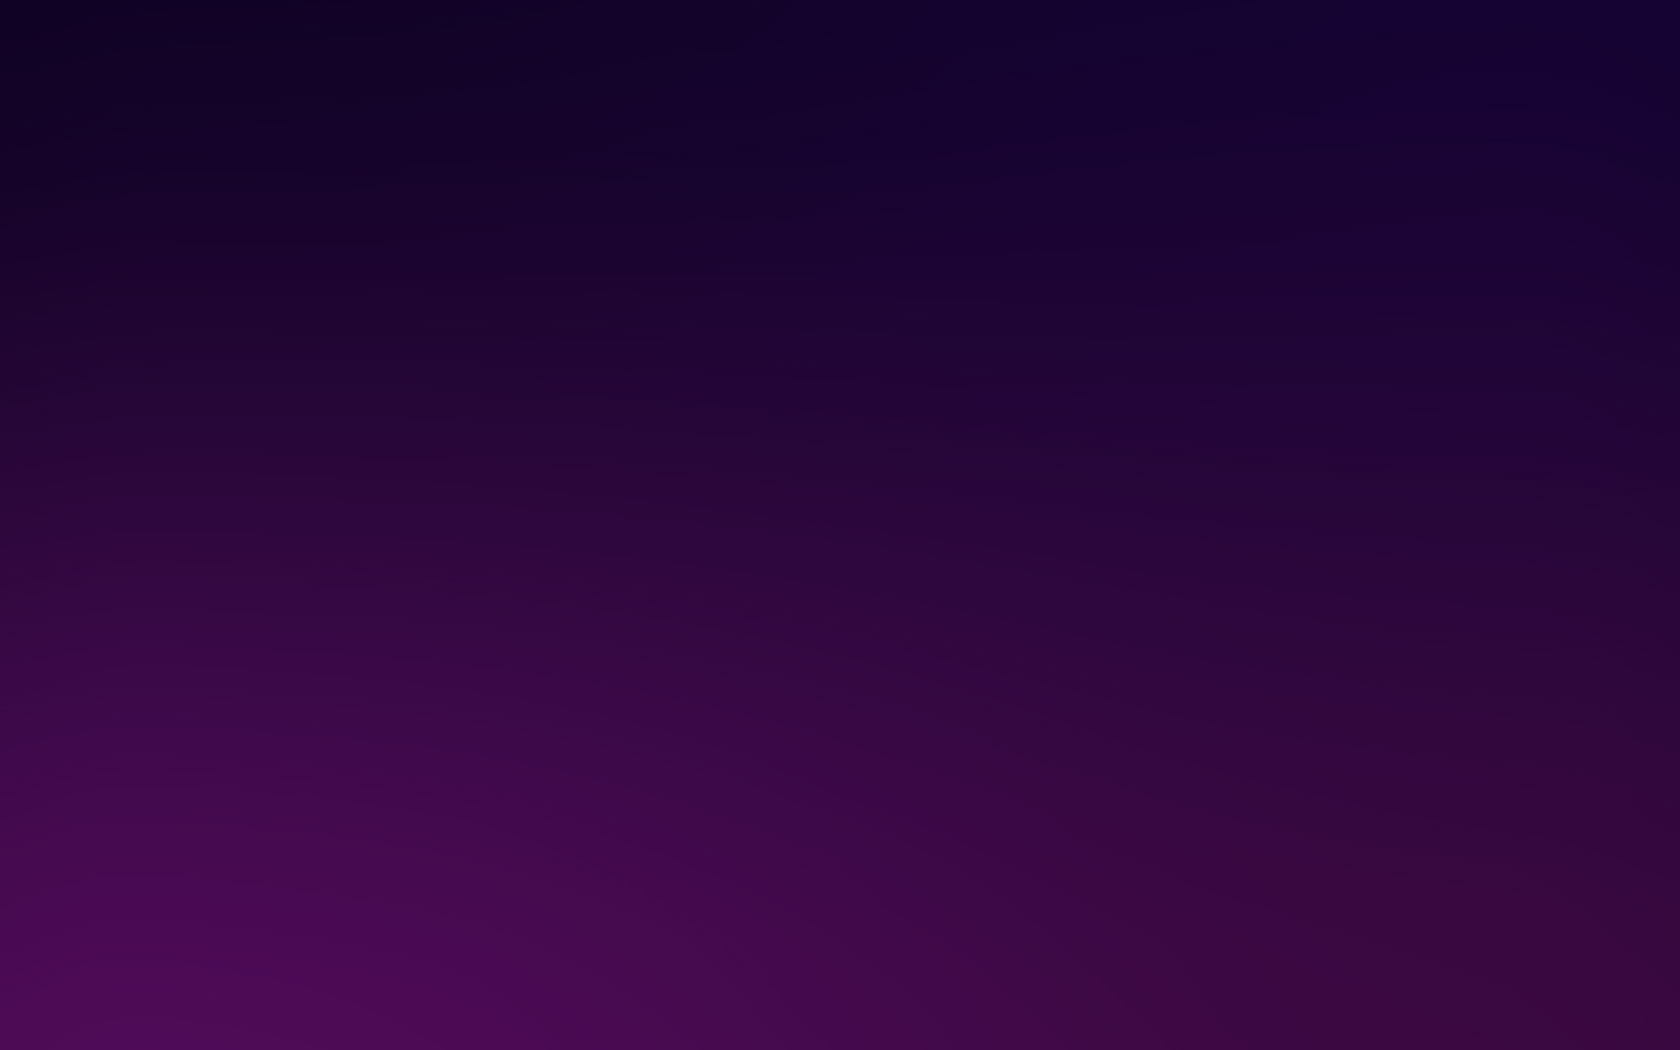 Cute Apple Logo Wallpaper Sk61 Dark Purple Blur Gradation Wallpaper